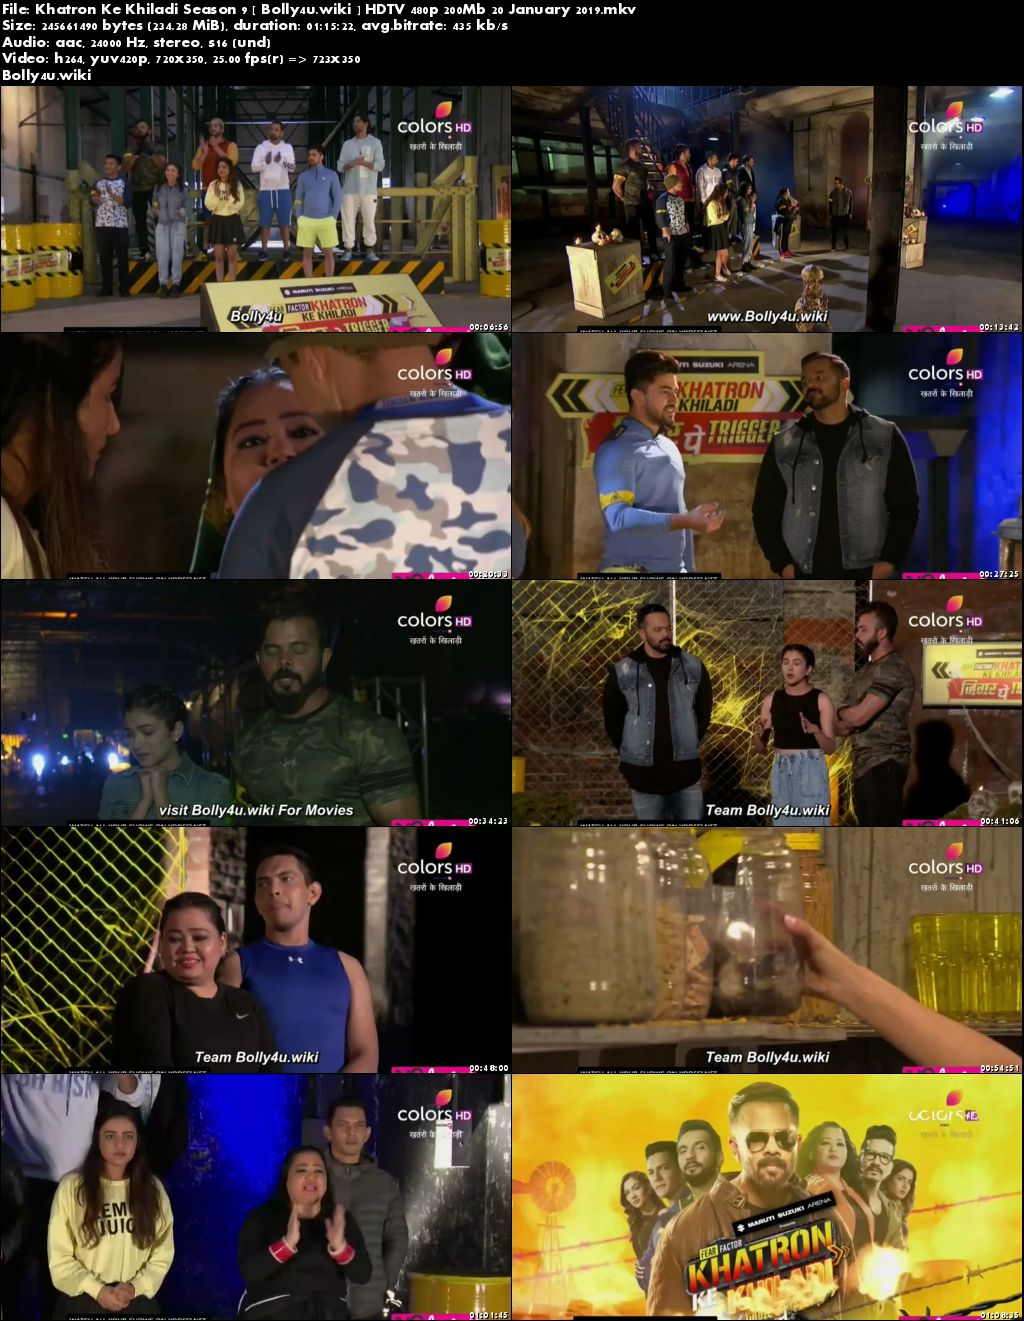 Khatron Ke Khiladi Season 9 HDTV 480p 200Mb 20 January 2019 Download